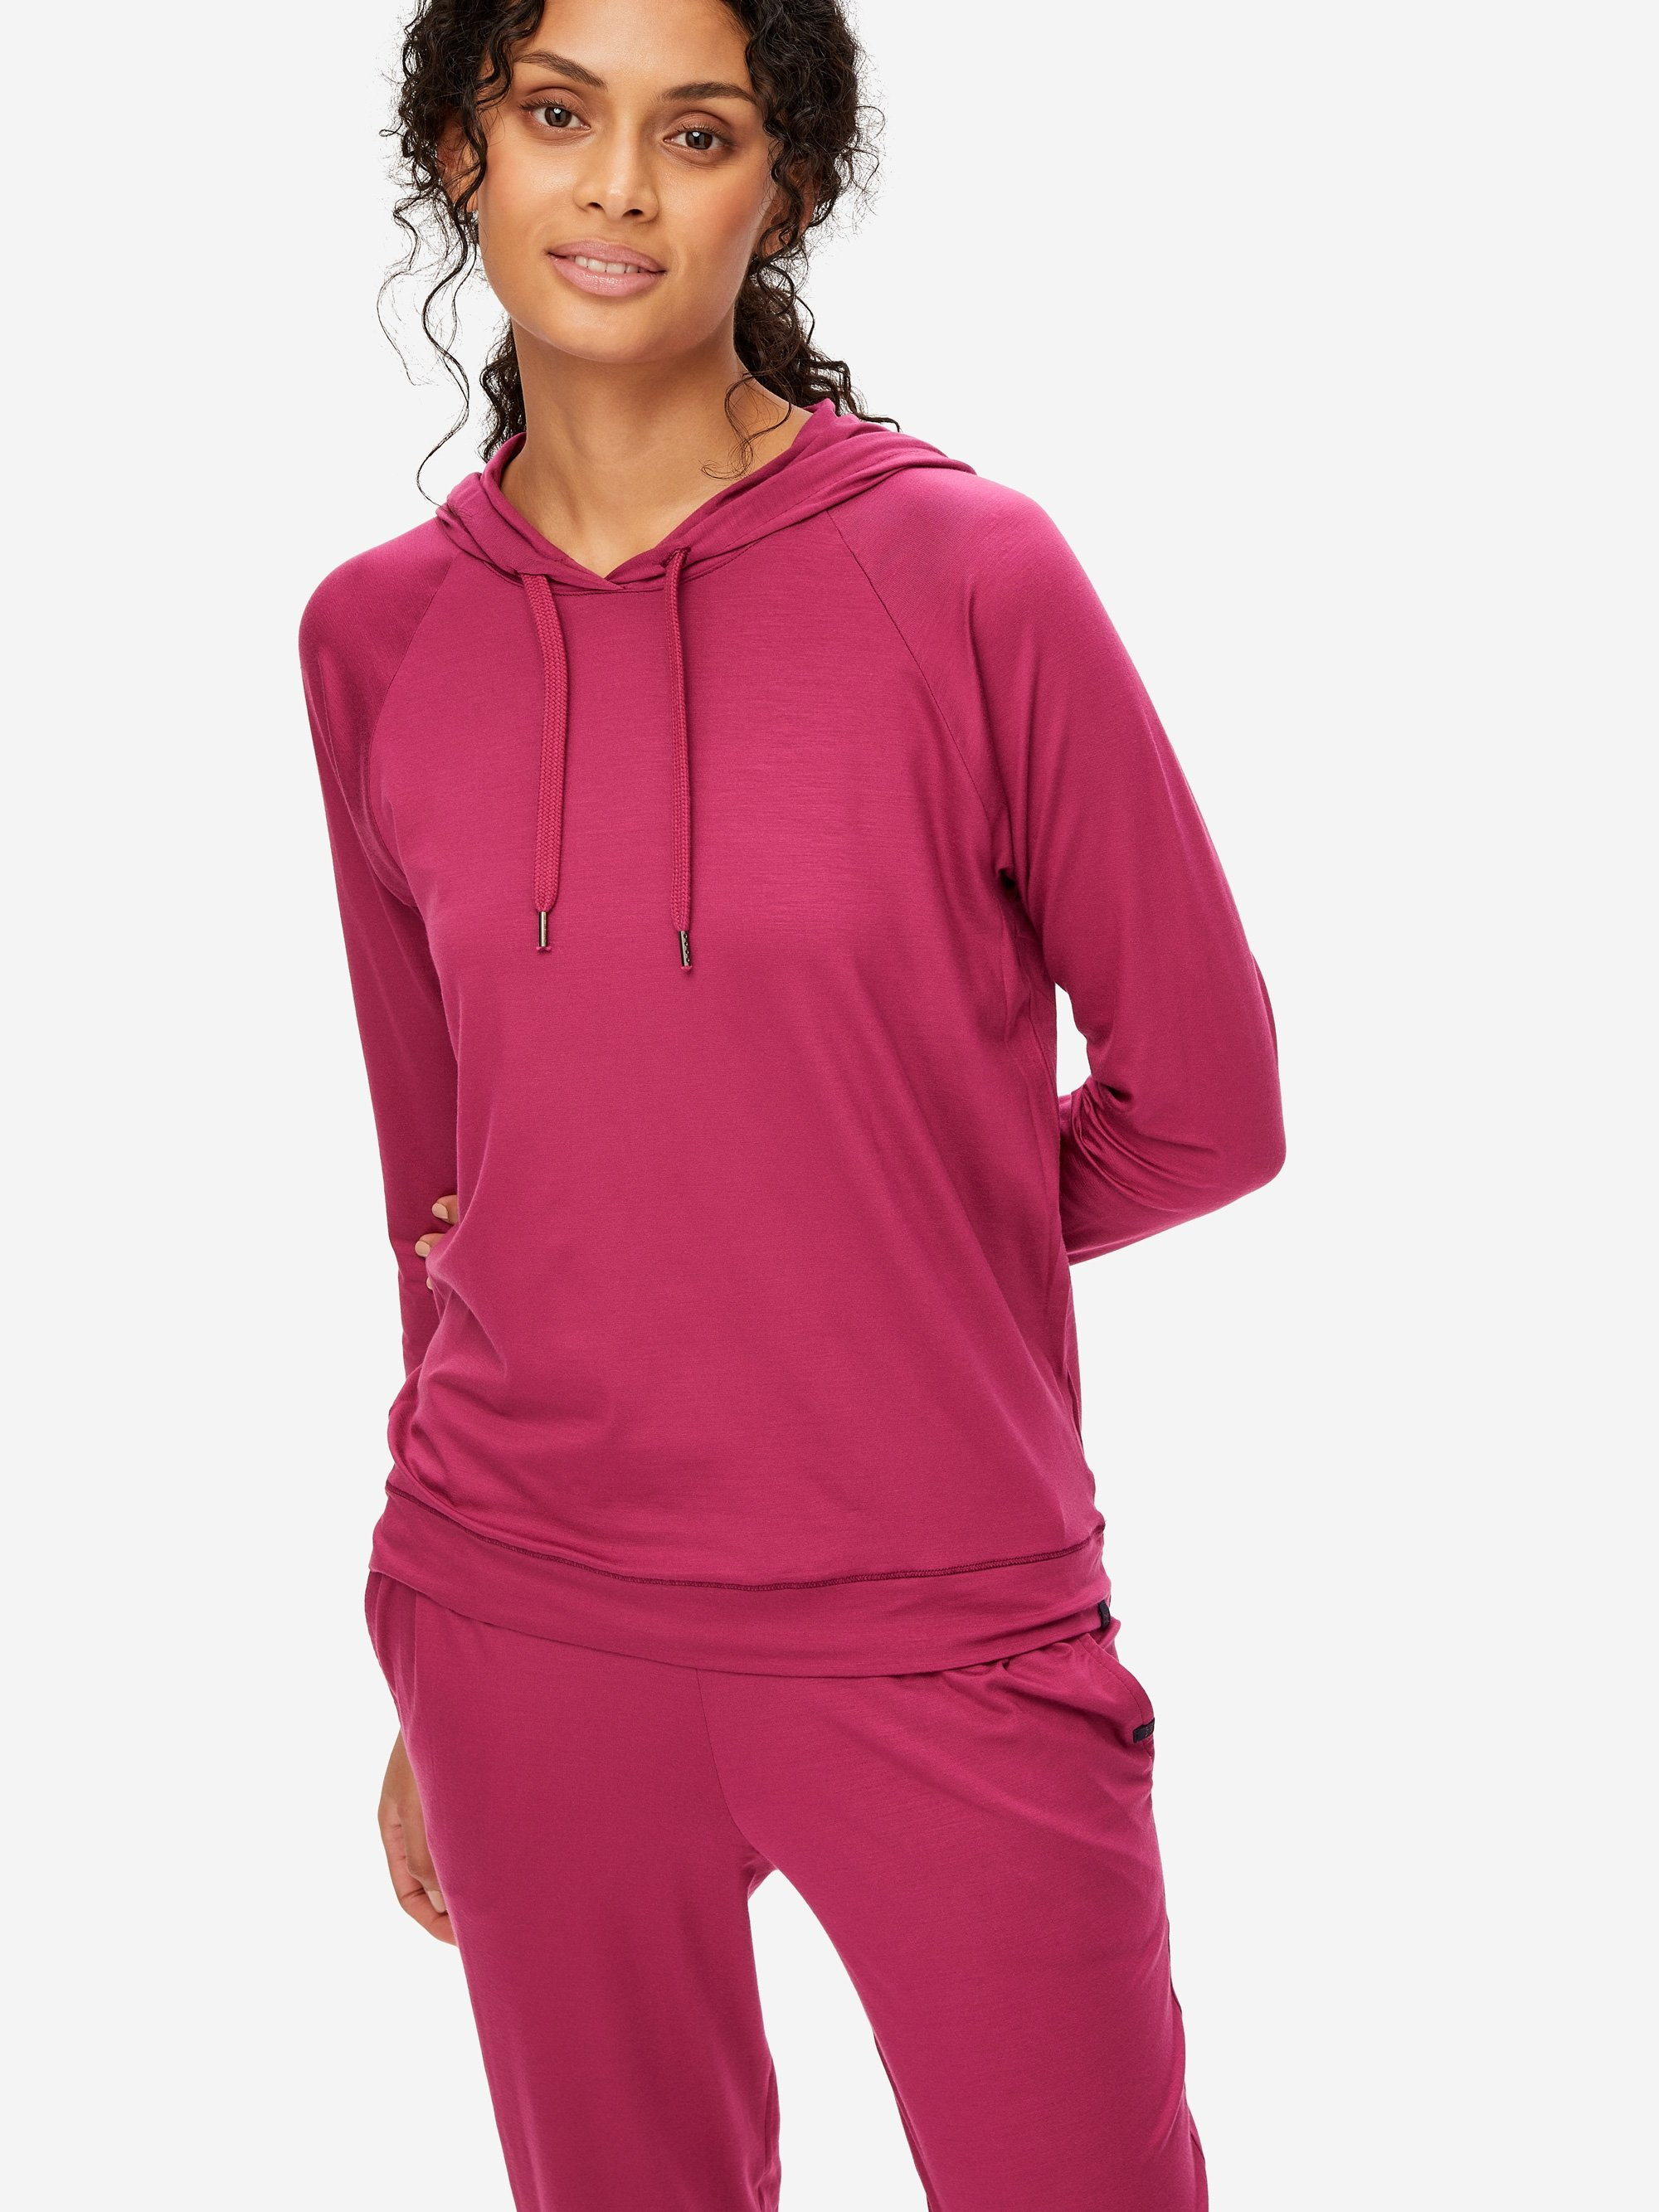 Women's Jersey Pullover Hoodie Basel 10 Micro Modal Stretch Berry